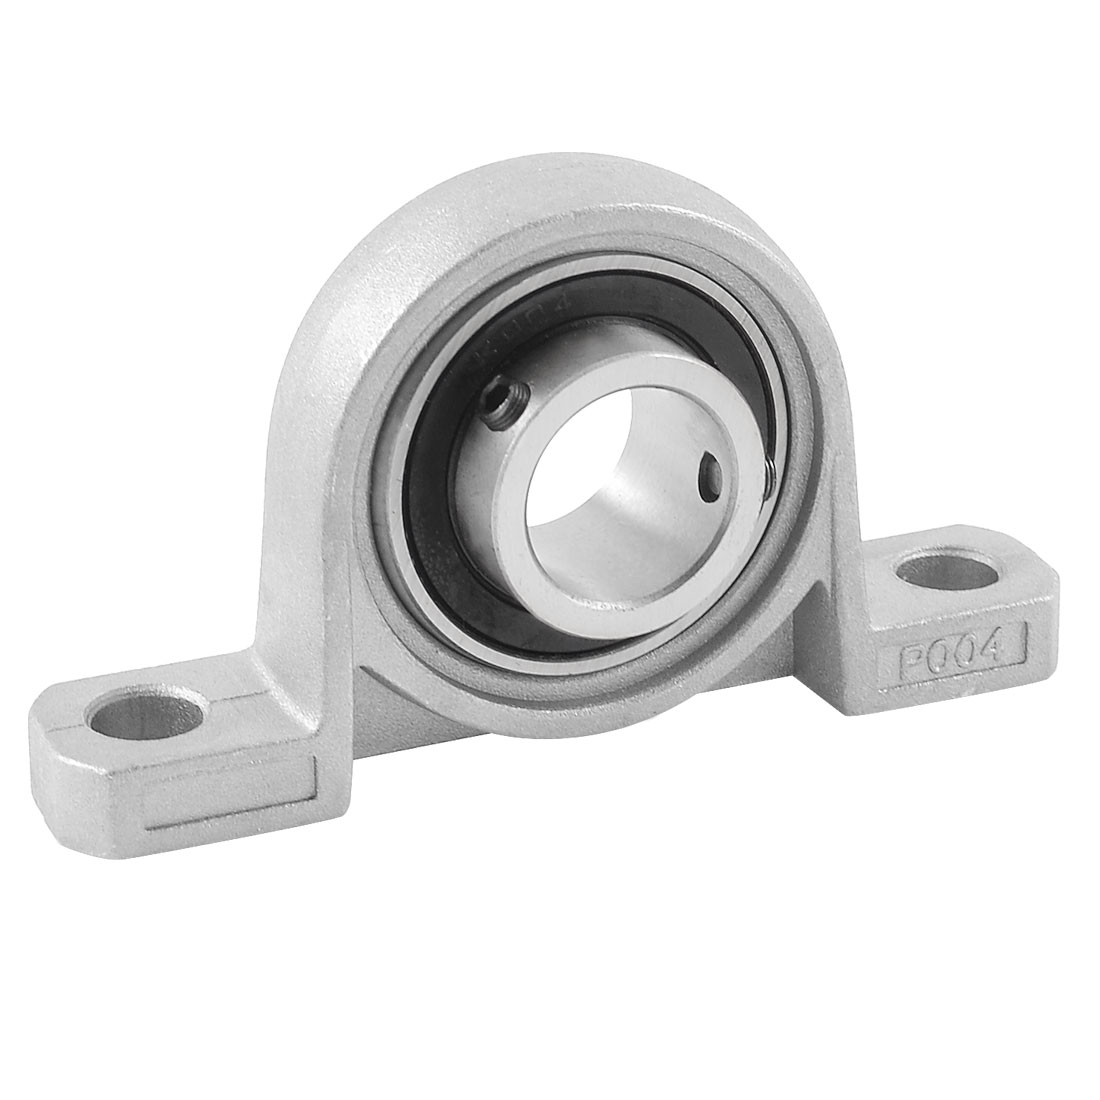 20mm Inner Dia Stainless Steel Self-adjust Pillow Block Ball Bearing